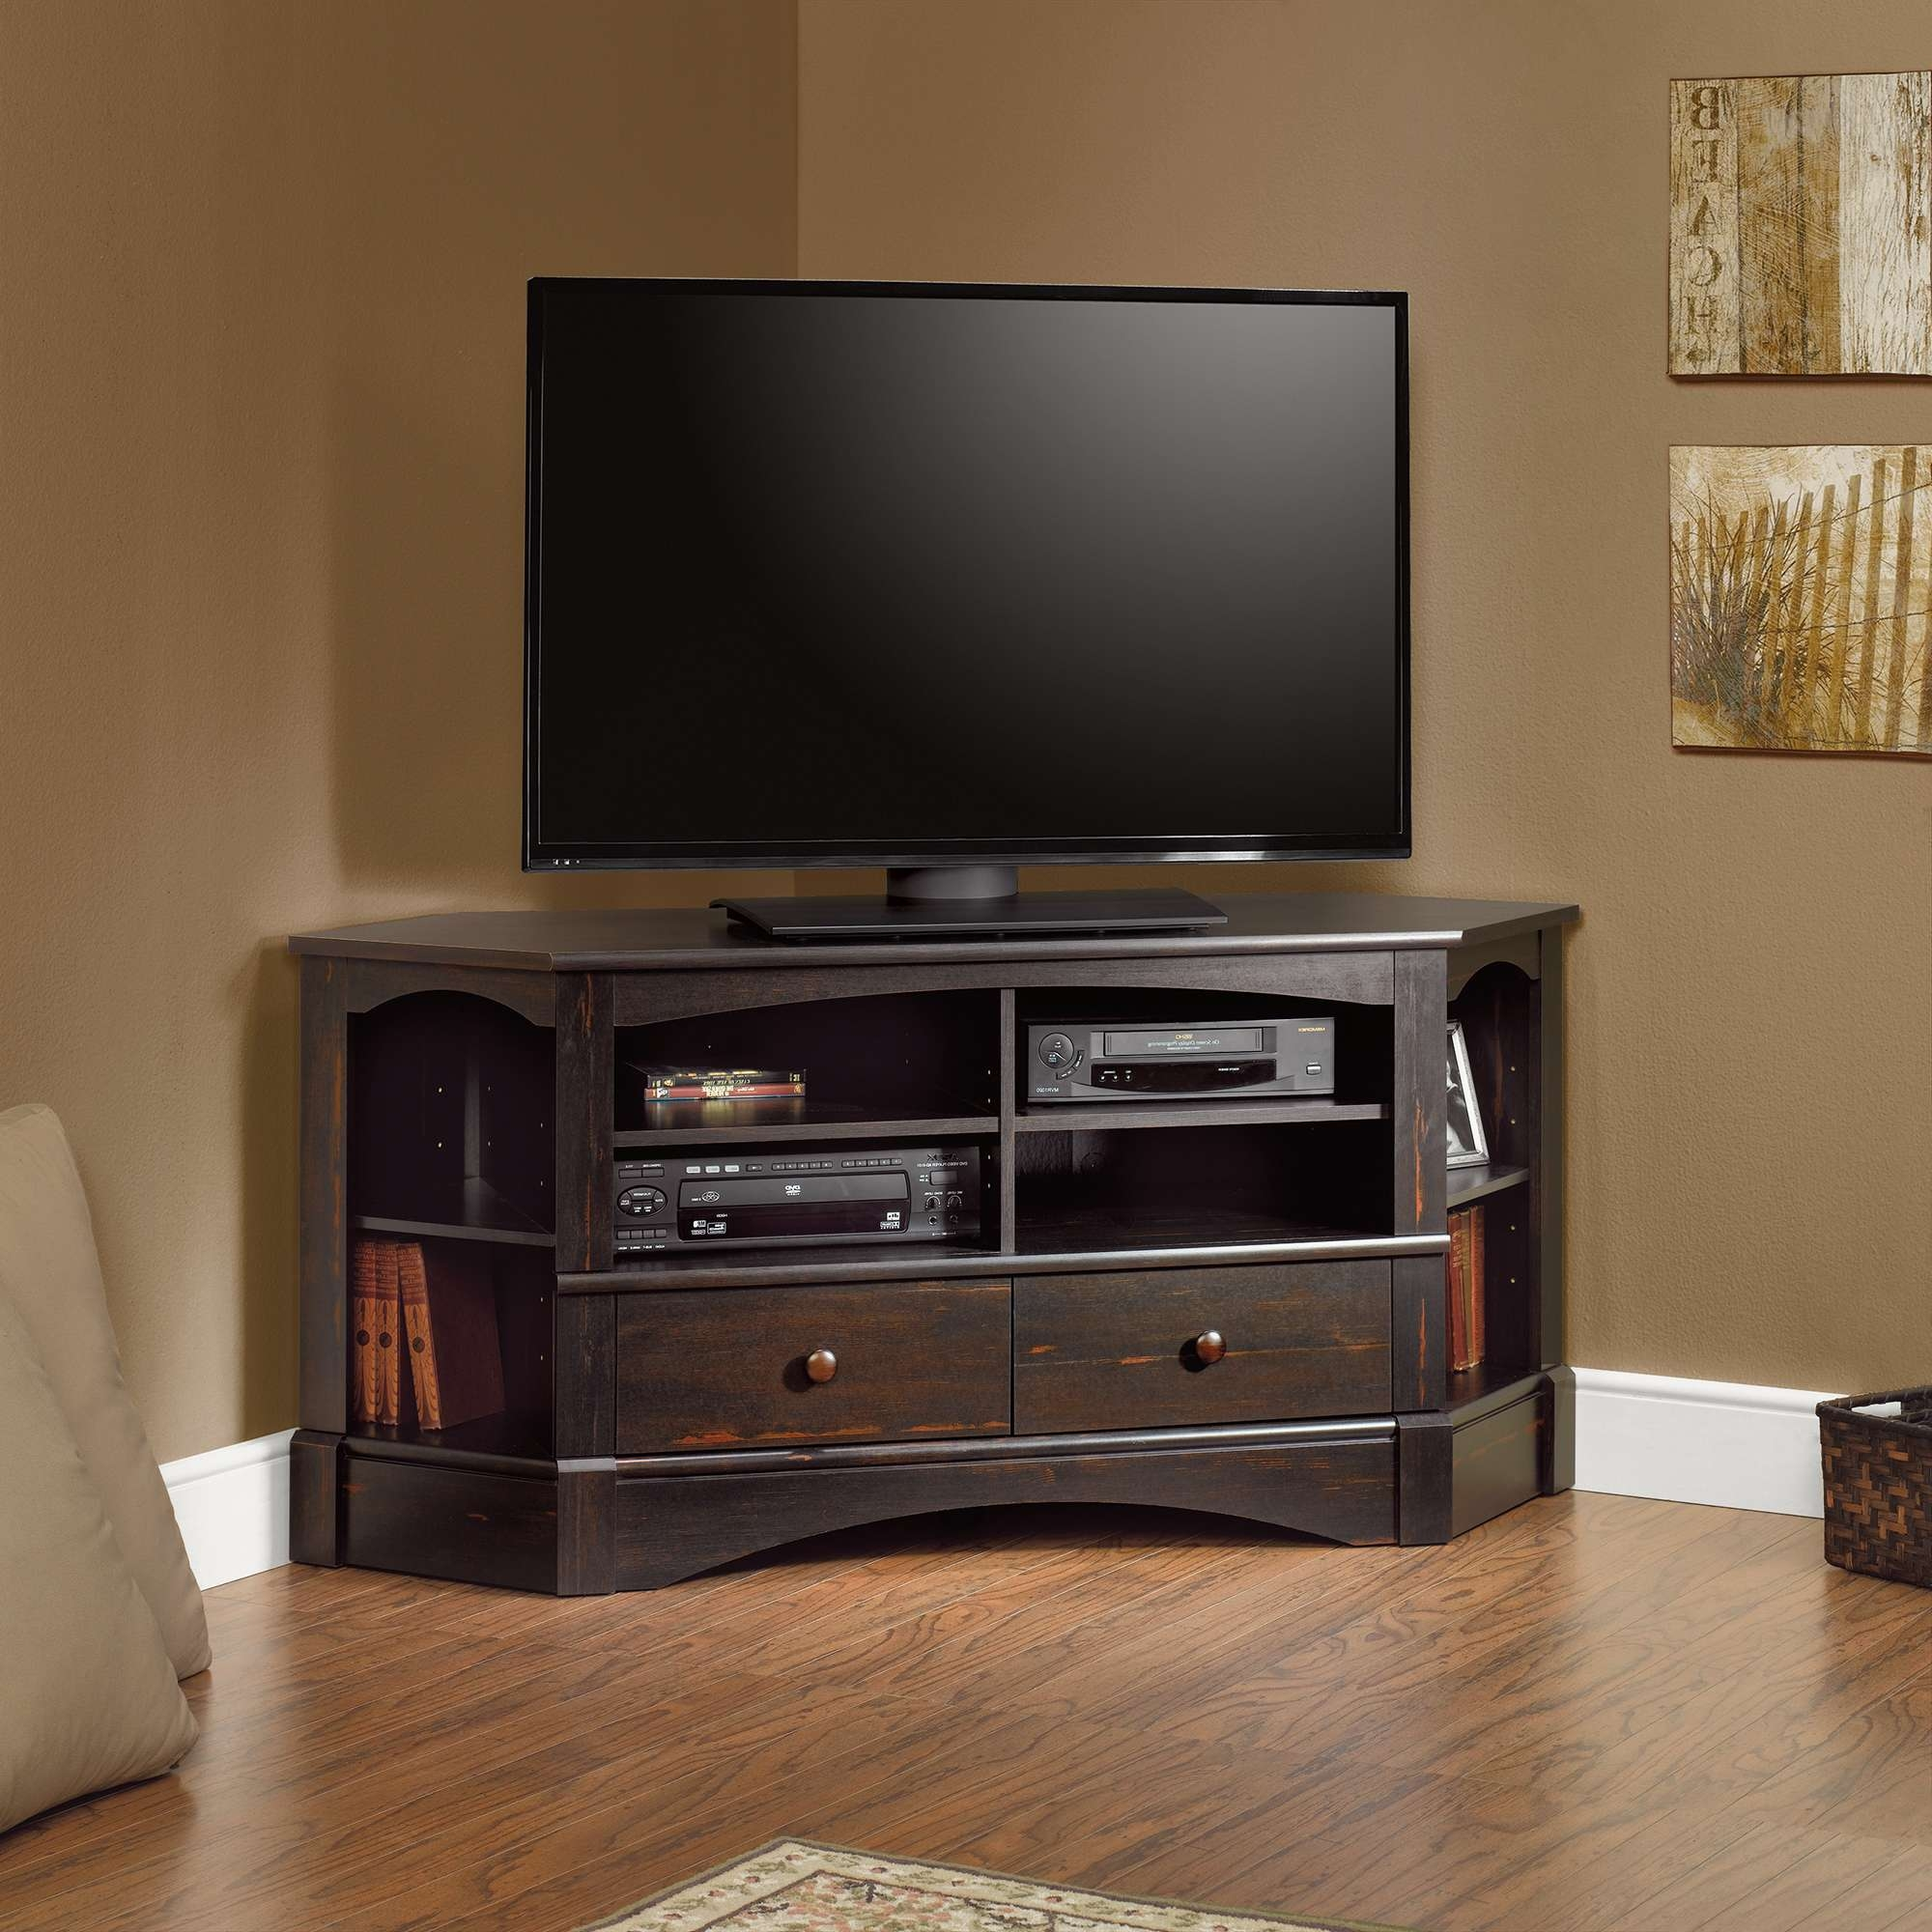 Harbor View | Corner Entertainment Credenza | 402902 | Sauder Inside Black Wood Corner Tv Stands (View 2 of 15)